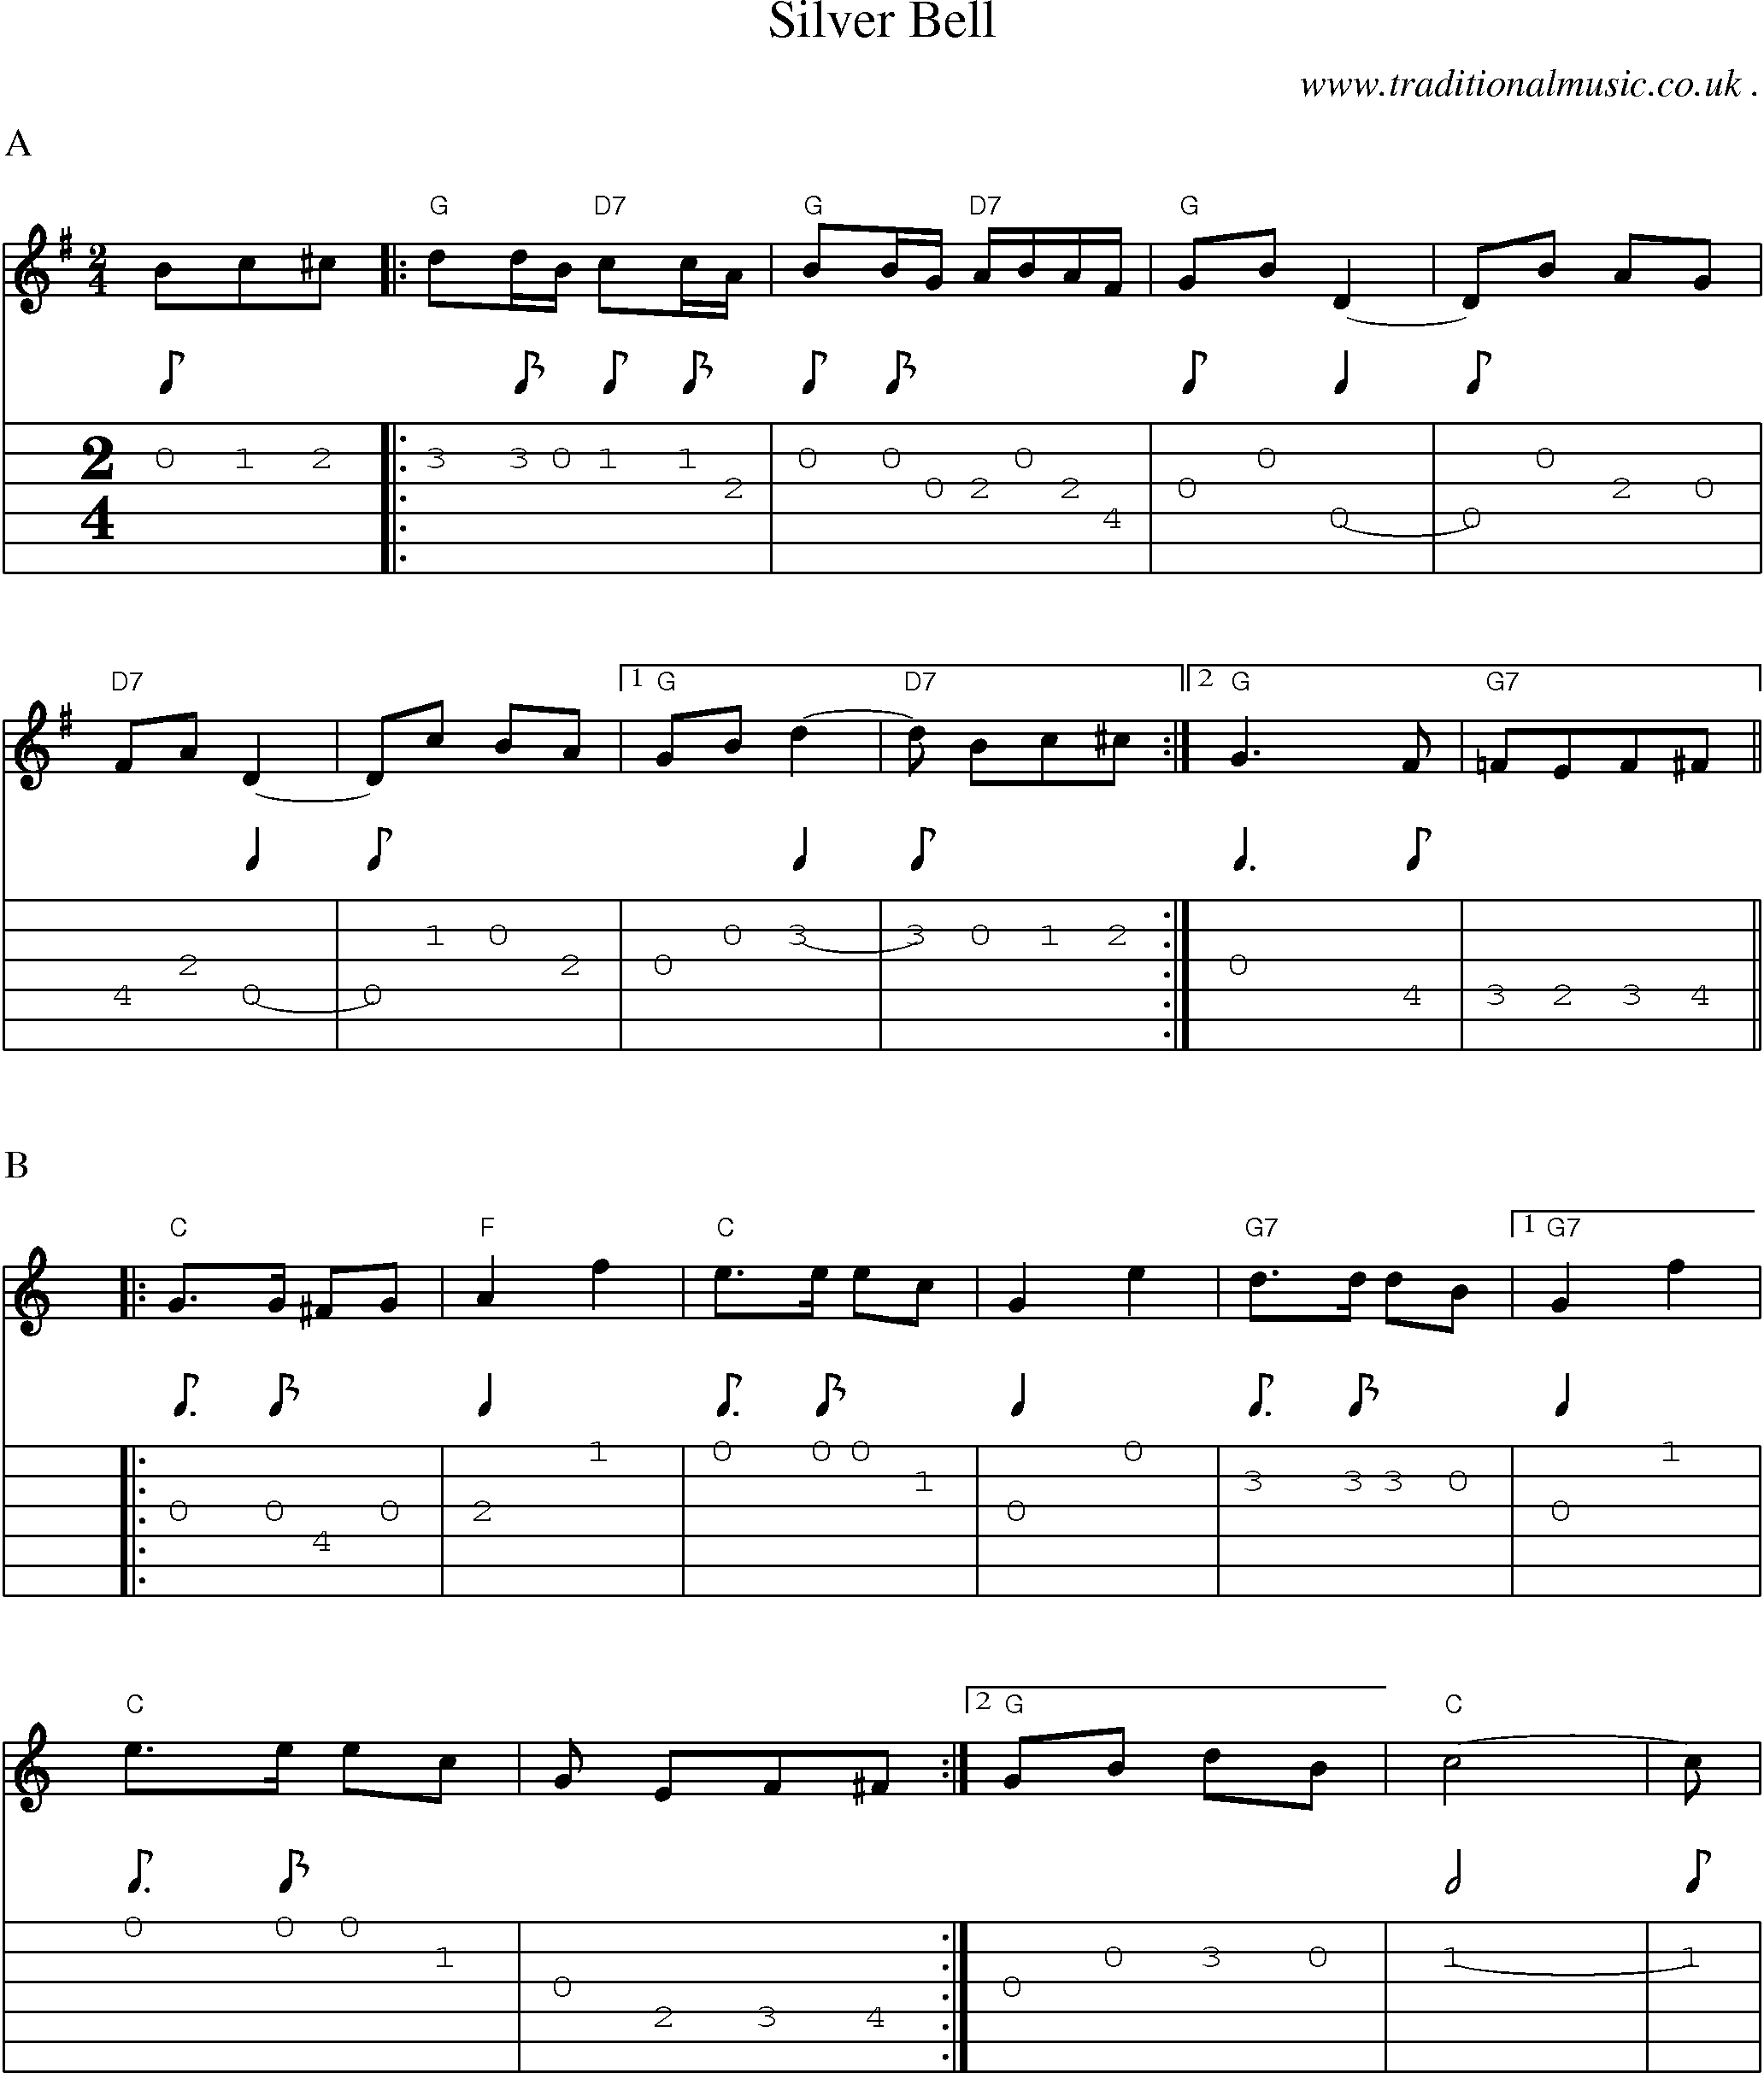 Music Score And Guitar Tabs For Silver Bell Sheet Music In 2018